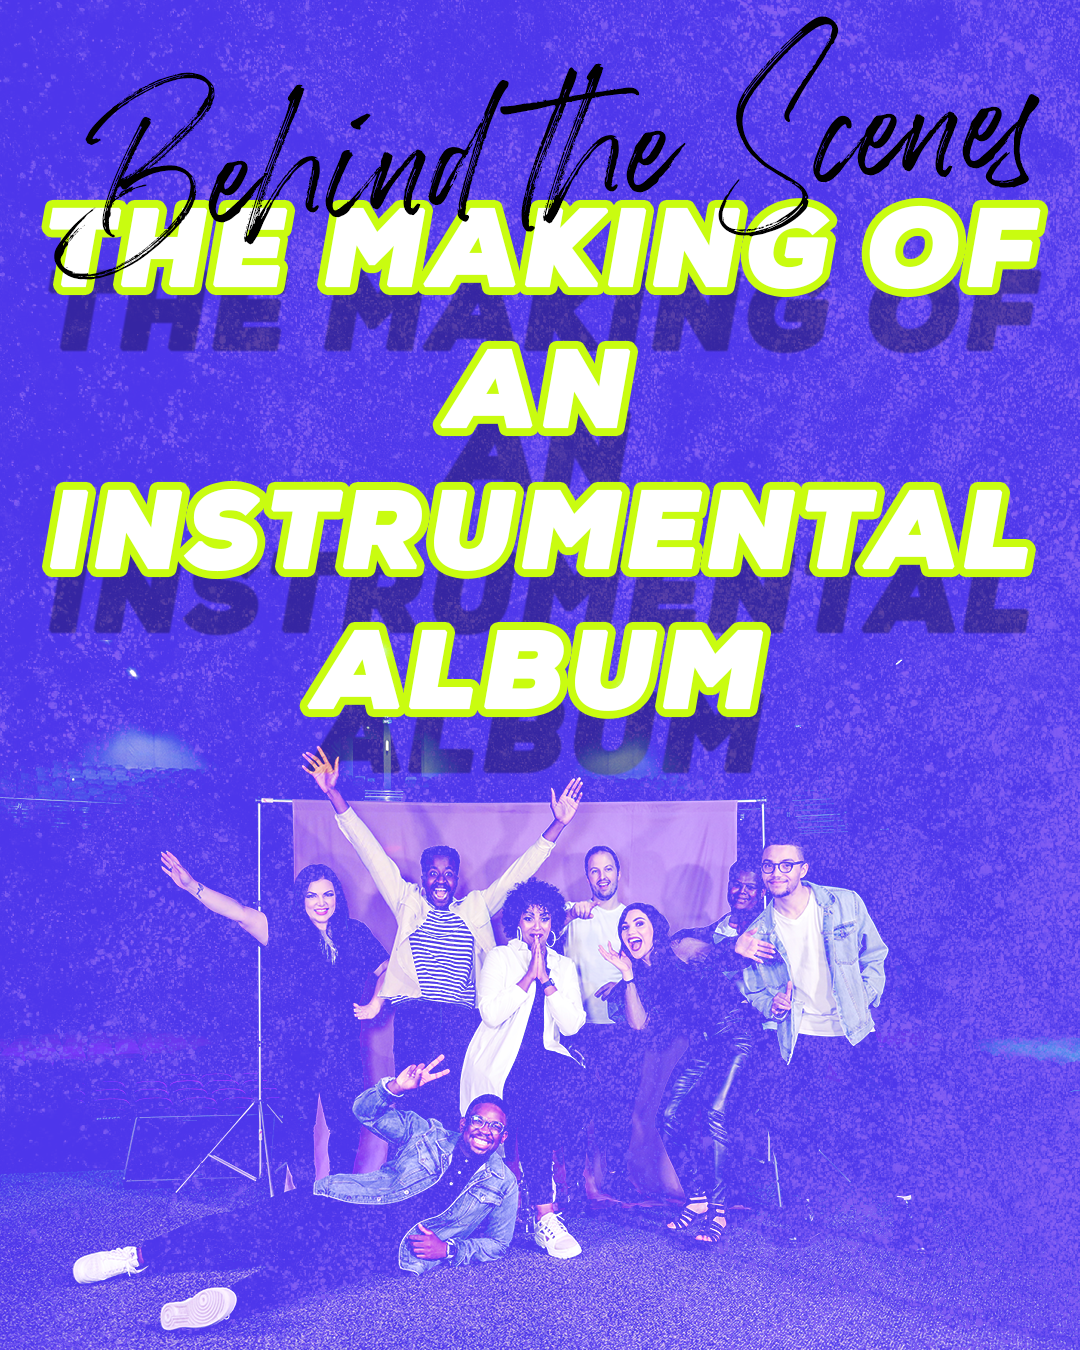 Behind the Scenes: The Making of an Instrumental Album